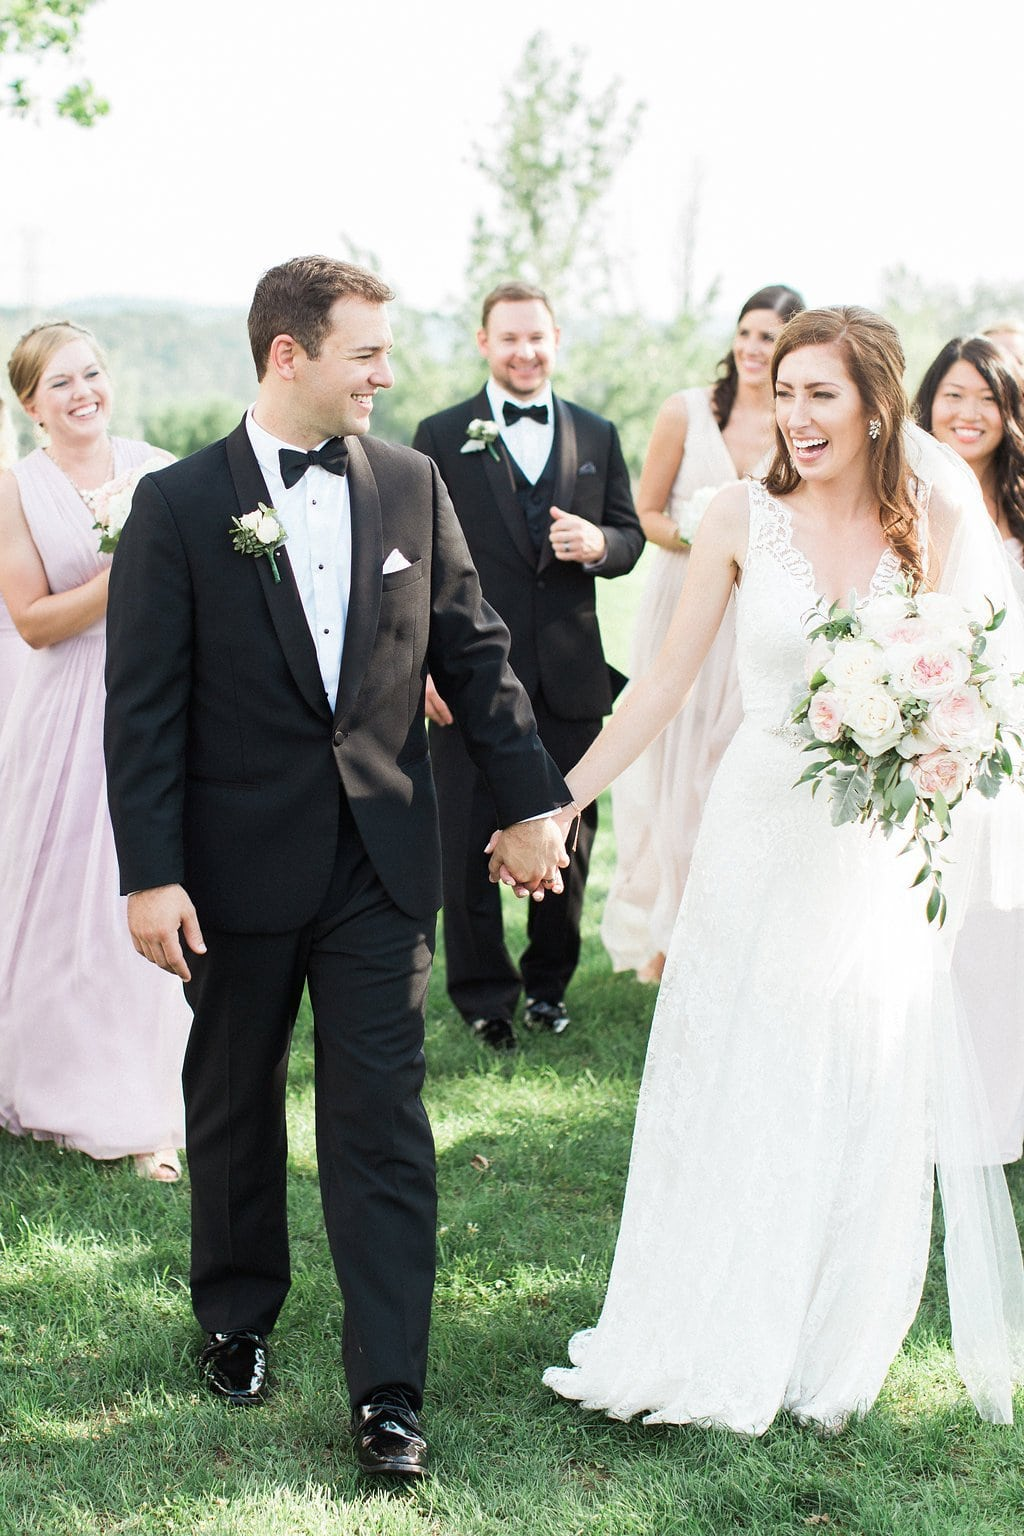 Bride and groom walking and holding hands with wedding party